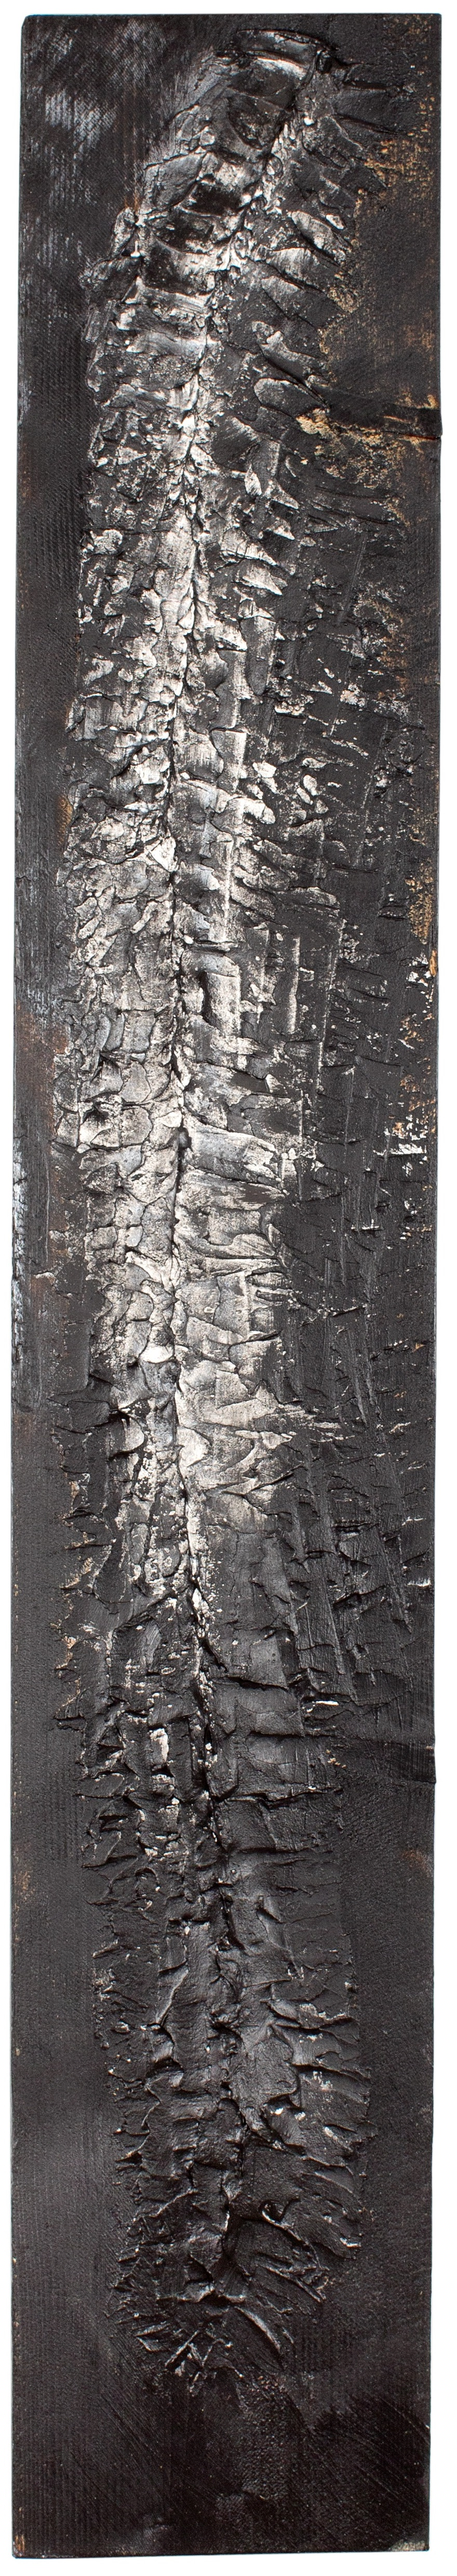 VERTEBRAE#8 -Plaster and acrylic on rough spruce board, 20x124cm - UNAVAILABLE